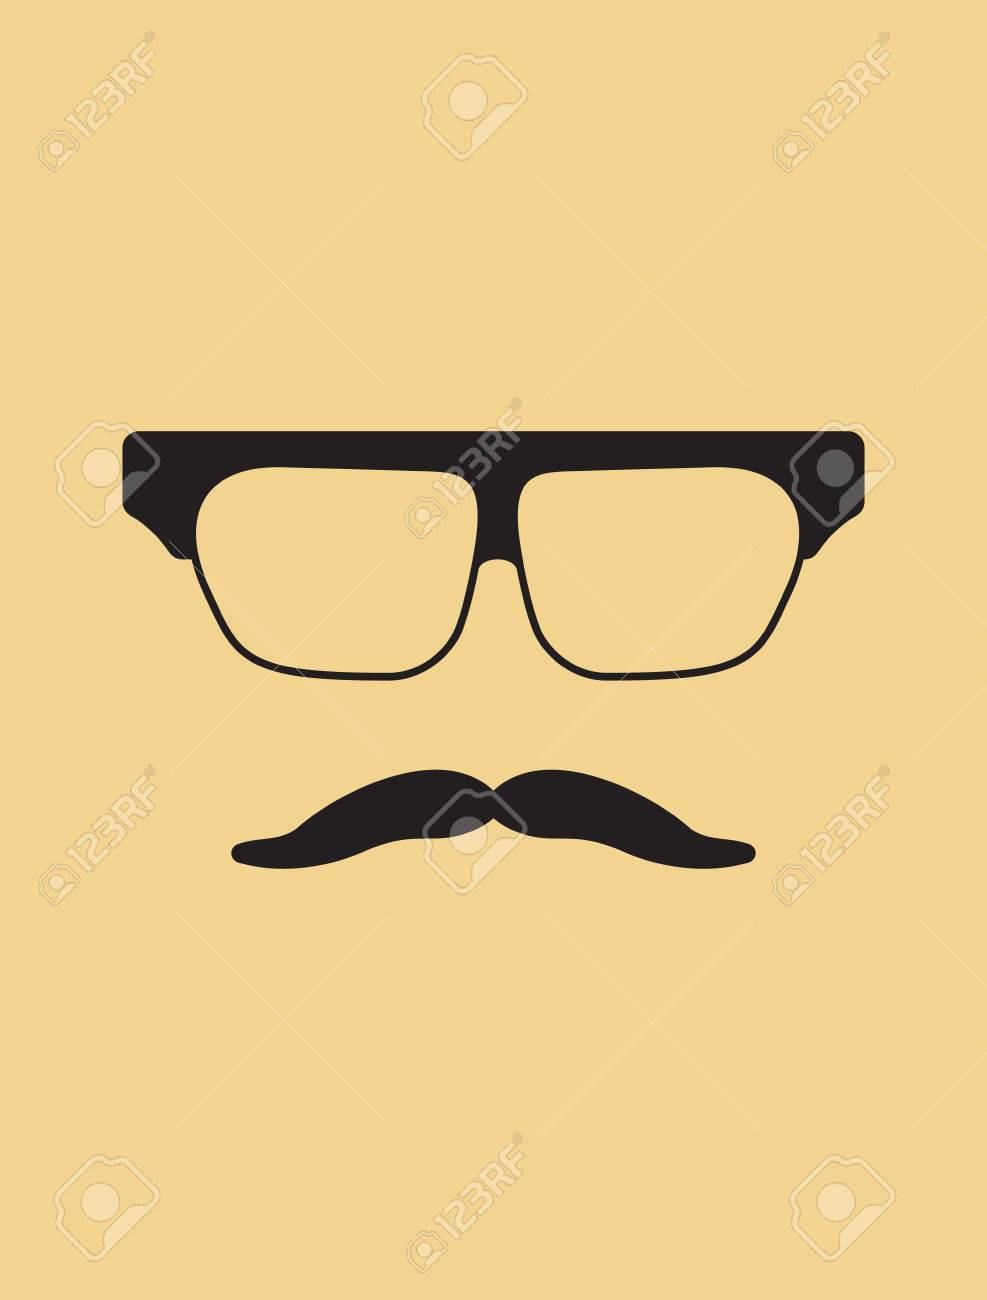 Hipster Template Nerd Glasses And Mustaches Royalty Free Cliparts ...